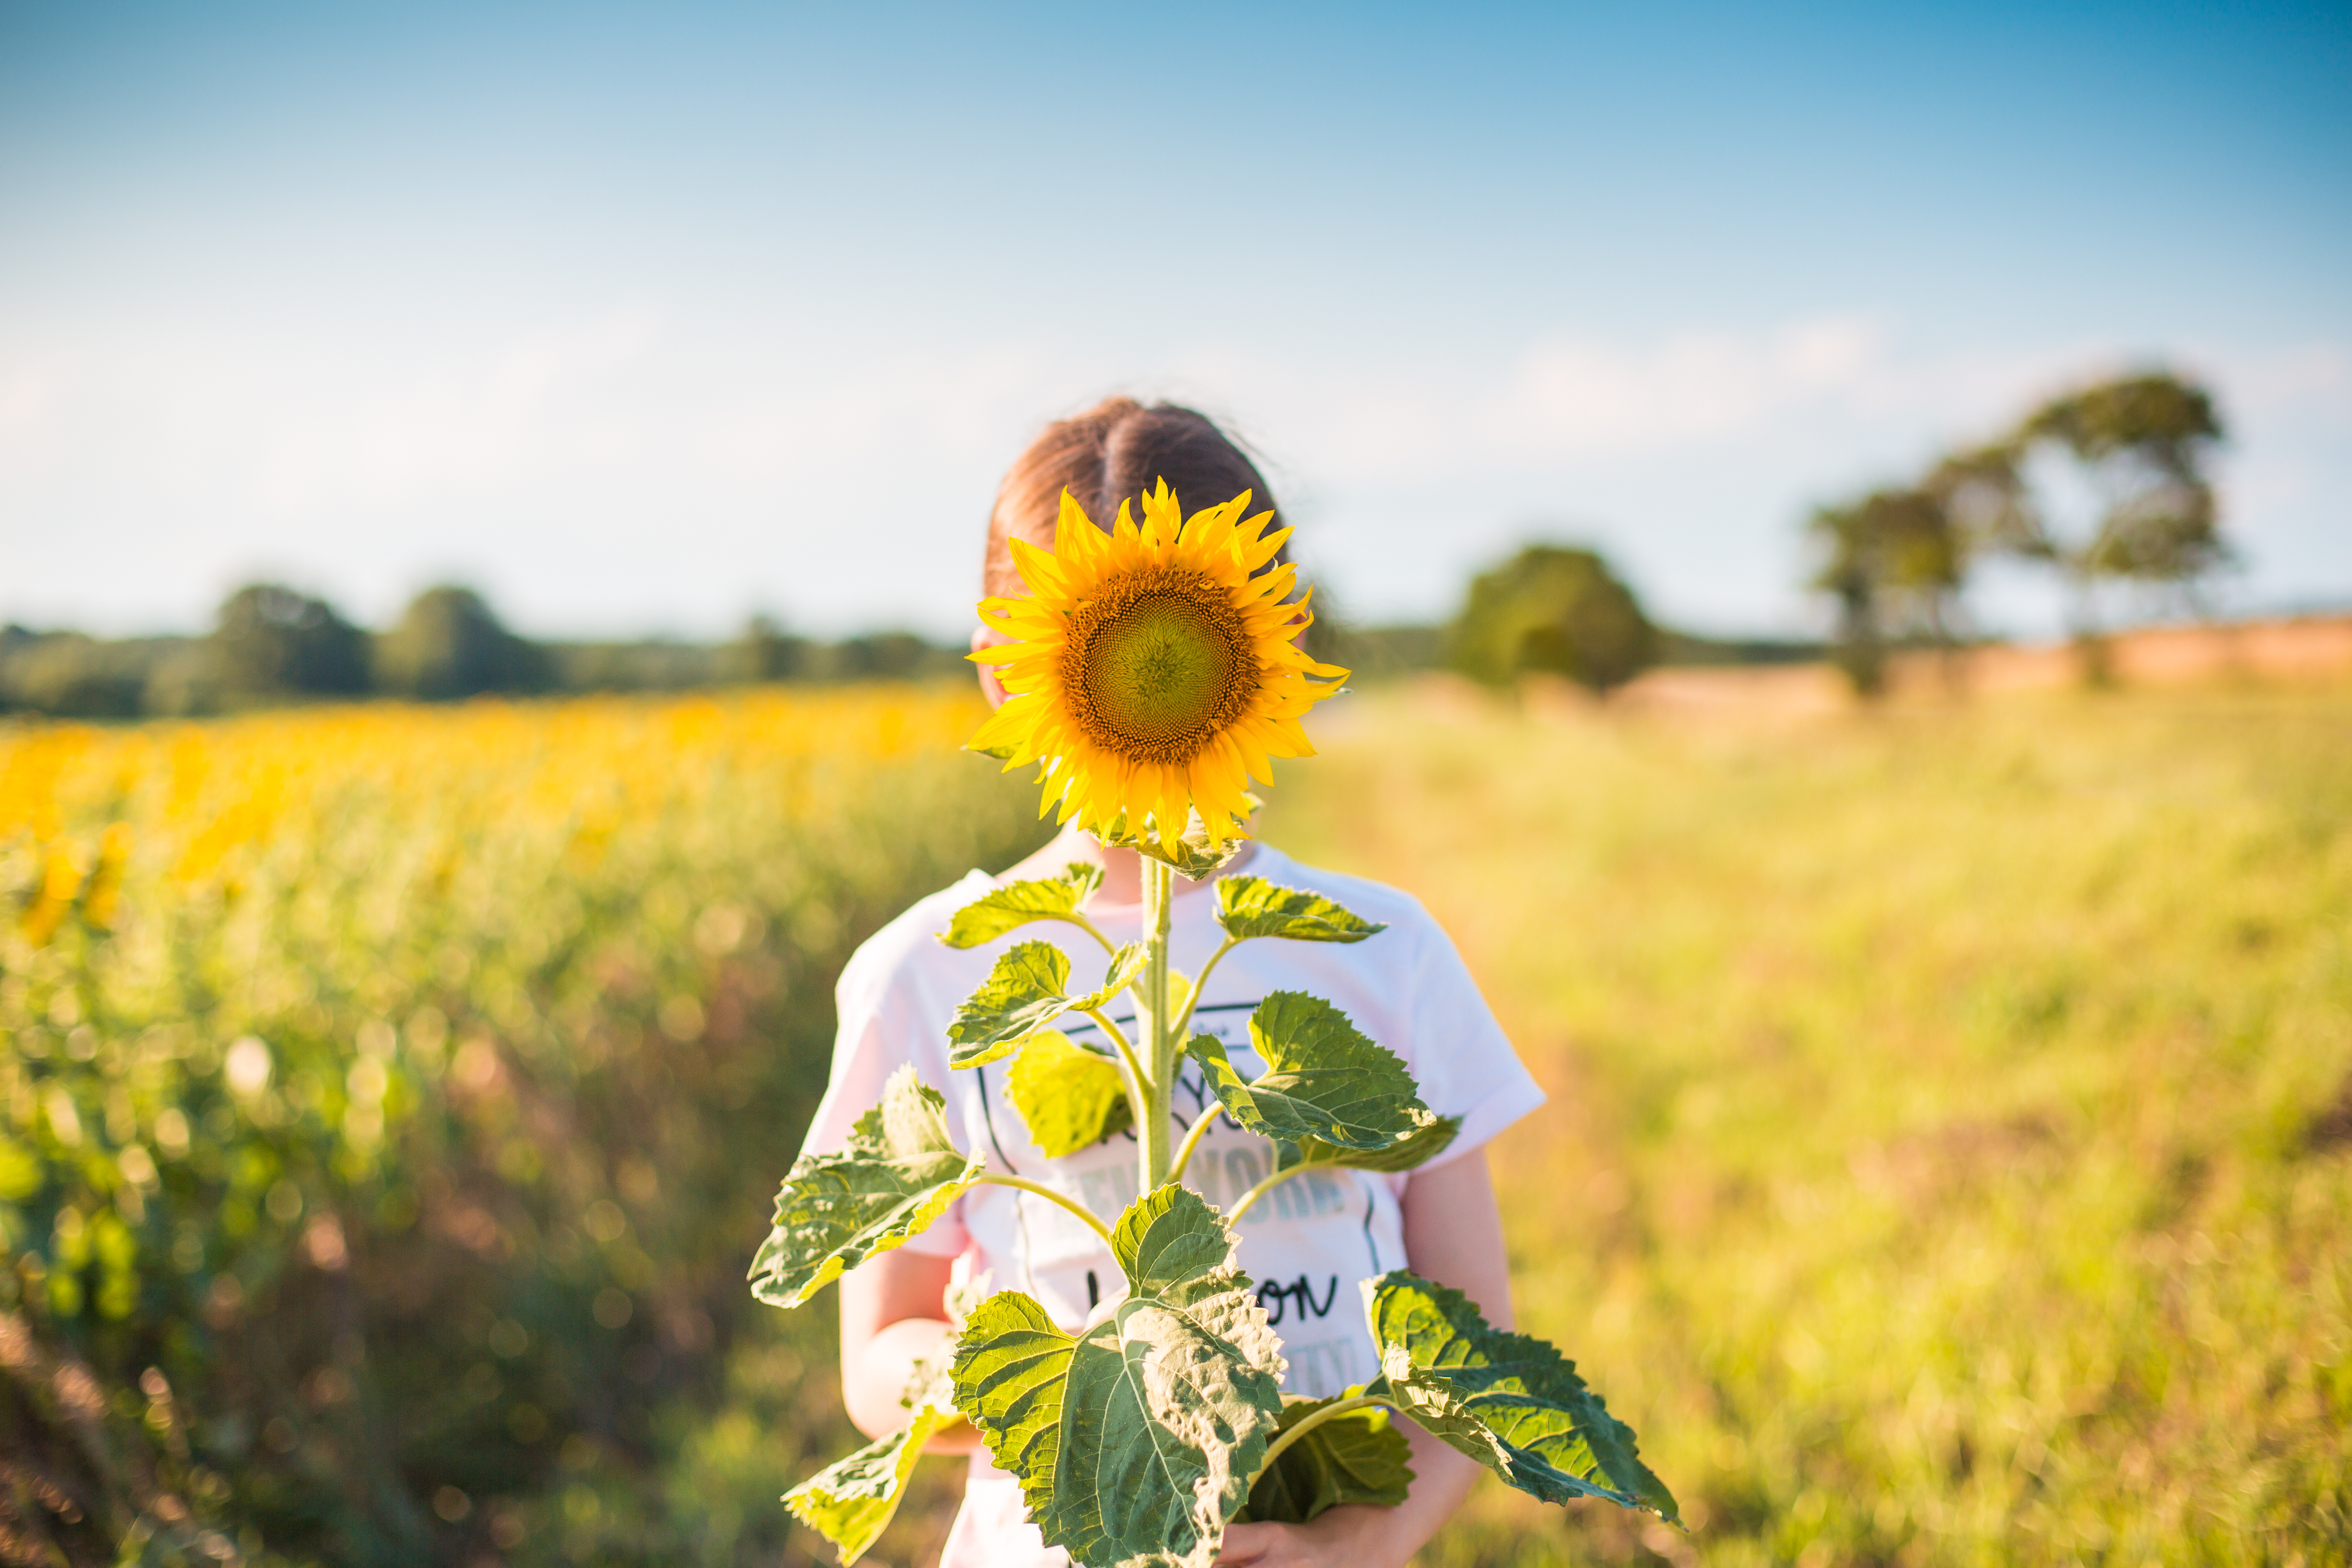 little-girl-with-sunflower-in-a-sunflower-field-picjumbo-com